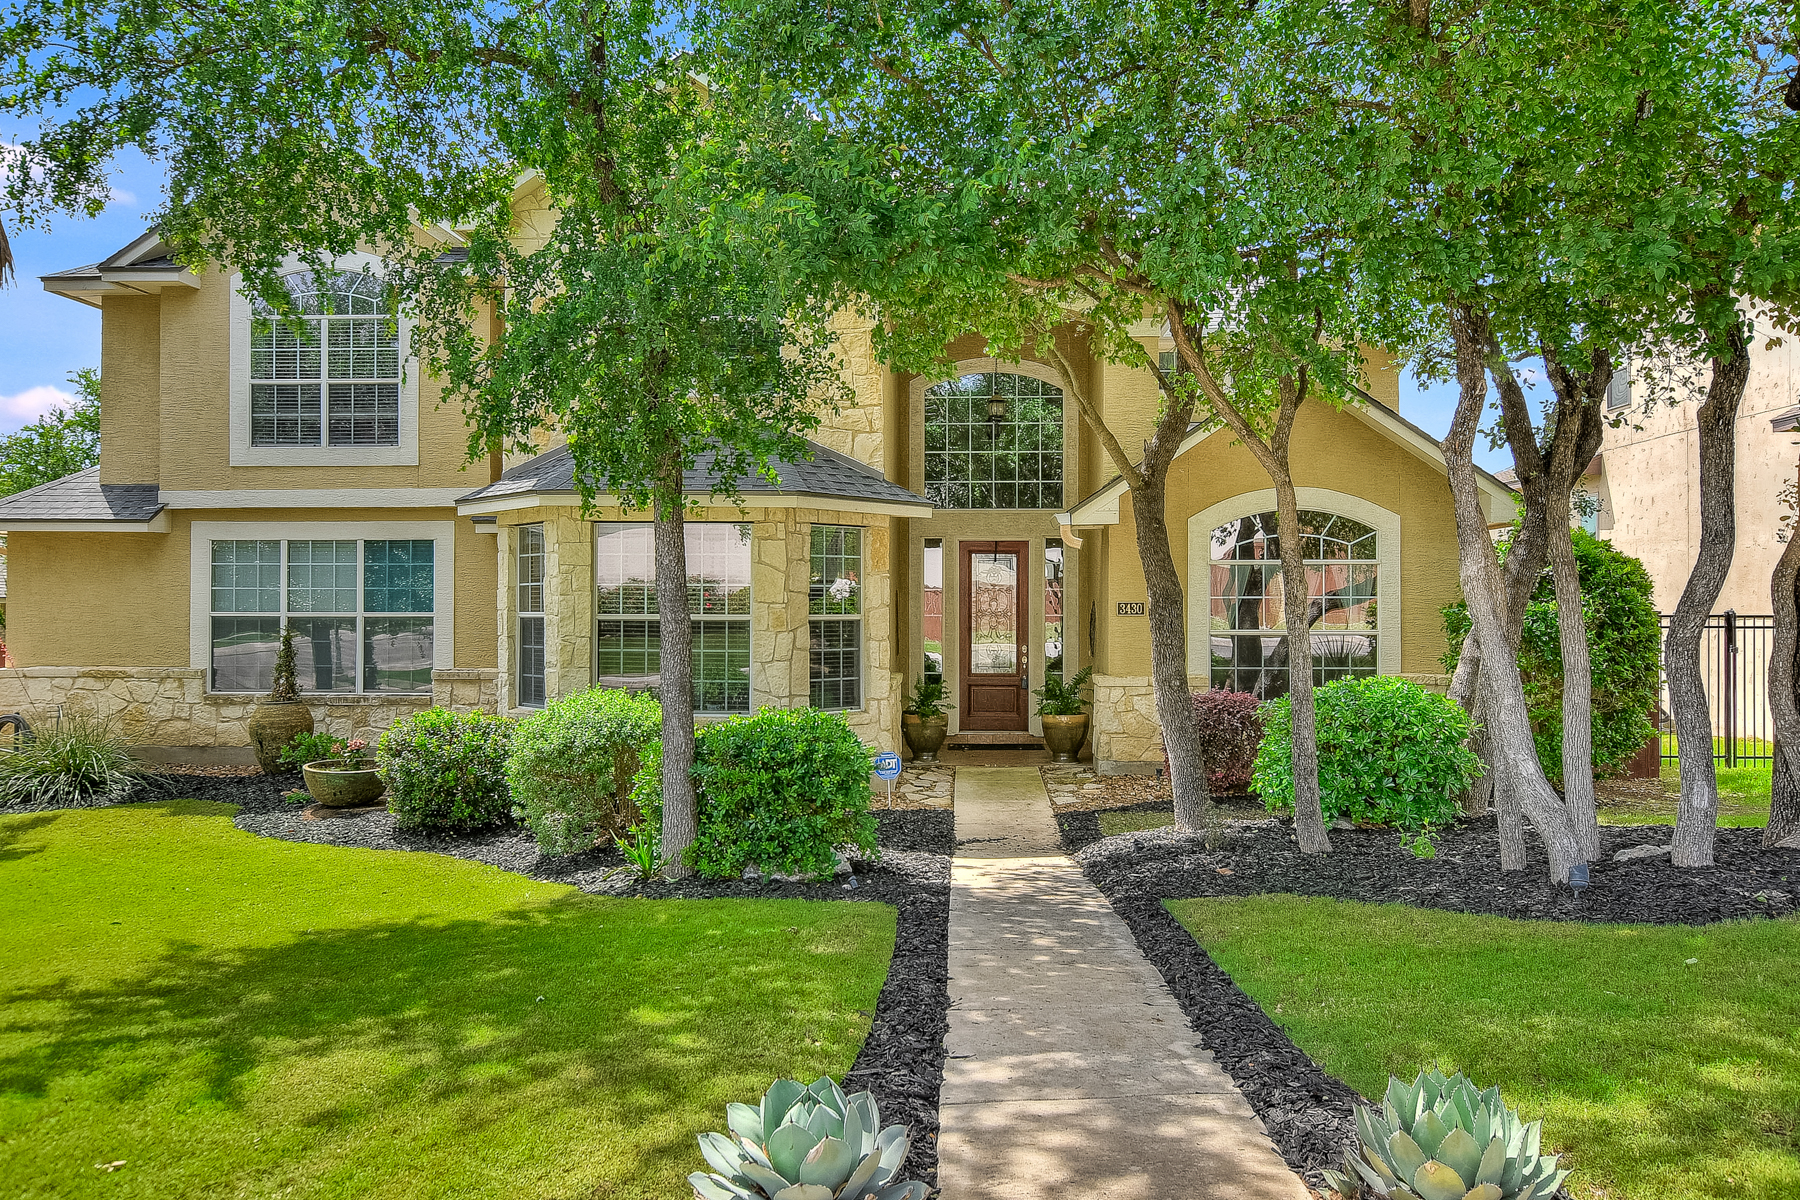 Single Family Home for Sale at Immaculate Home in Rogers Ranch 3430 Ivory Crk San Antonio, Texas 78258 United States